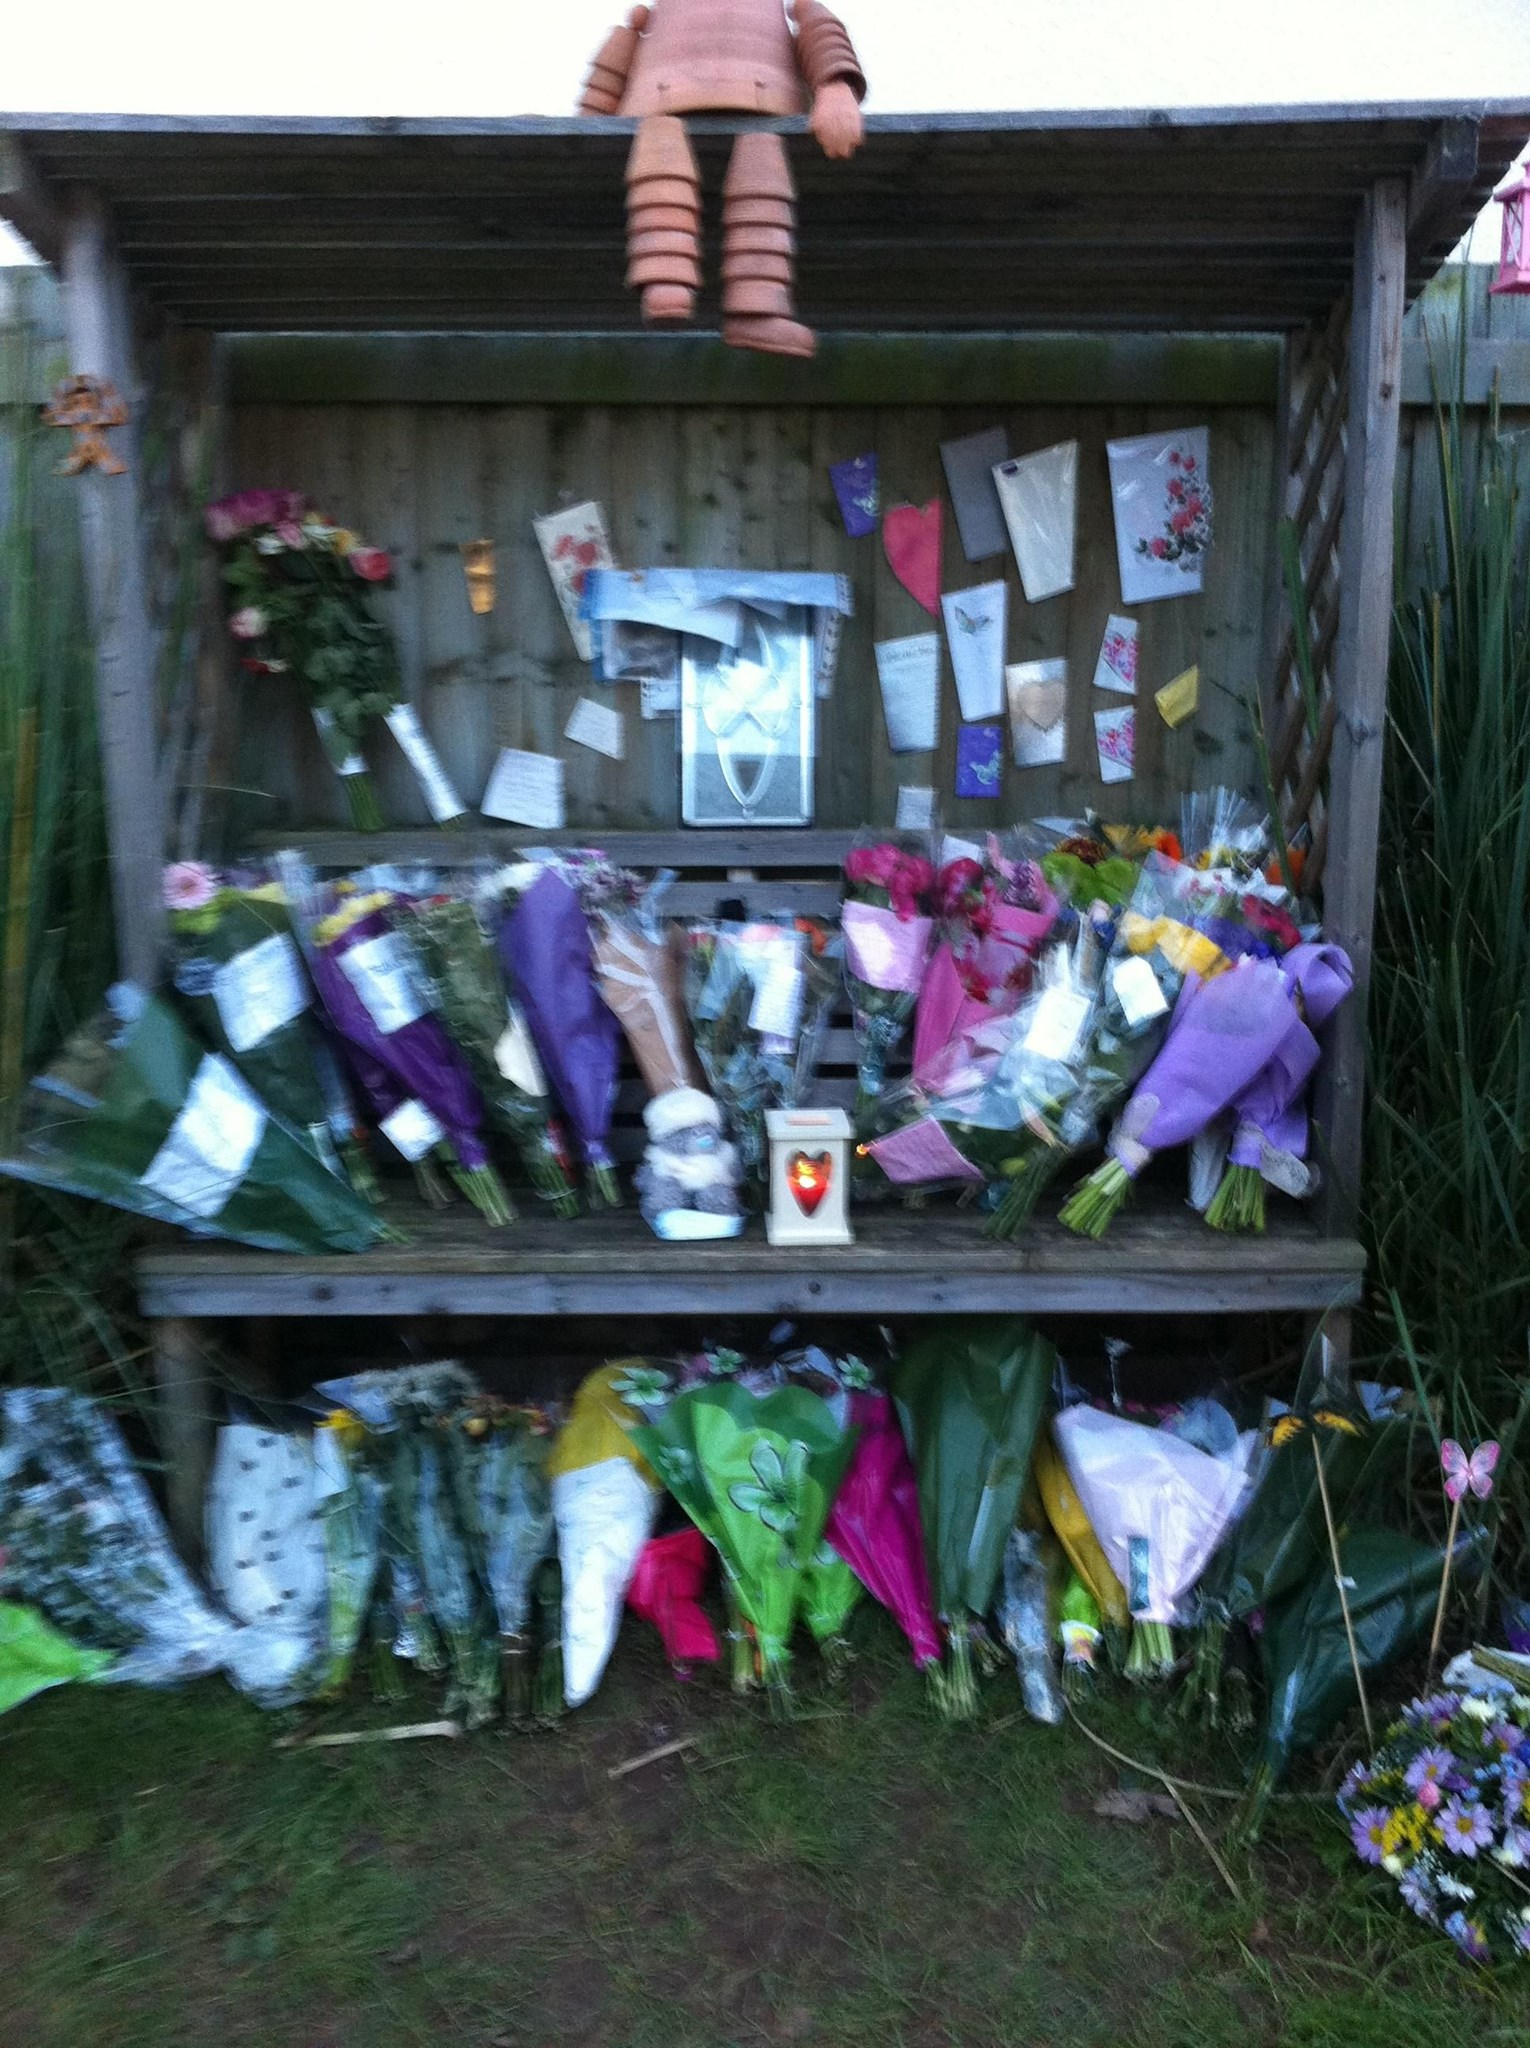 Flowers collected from the roadside memorial